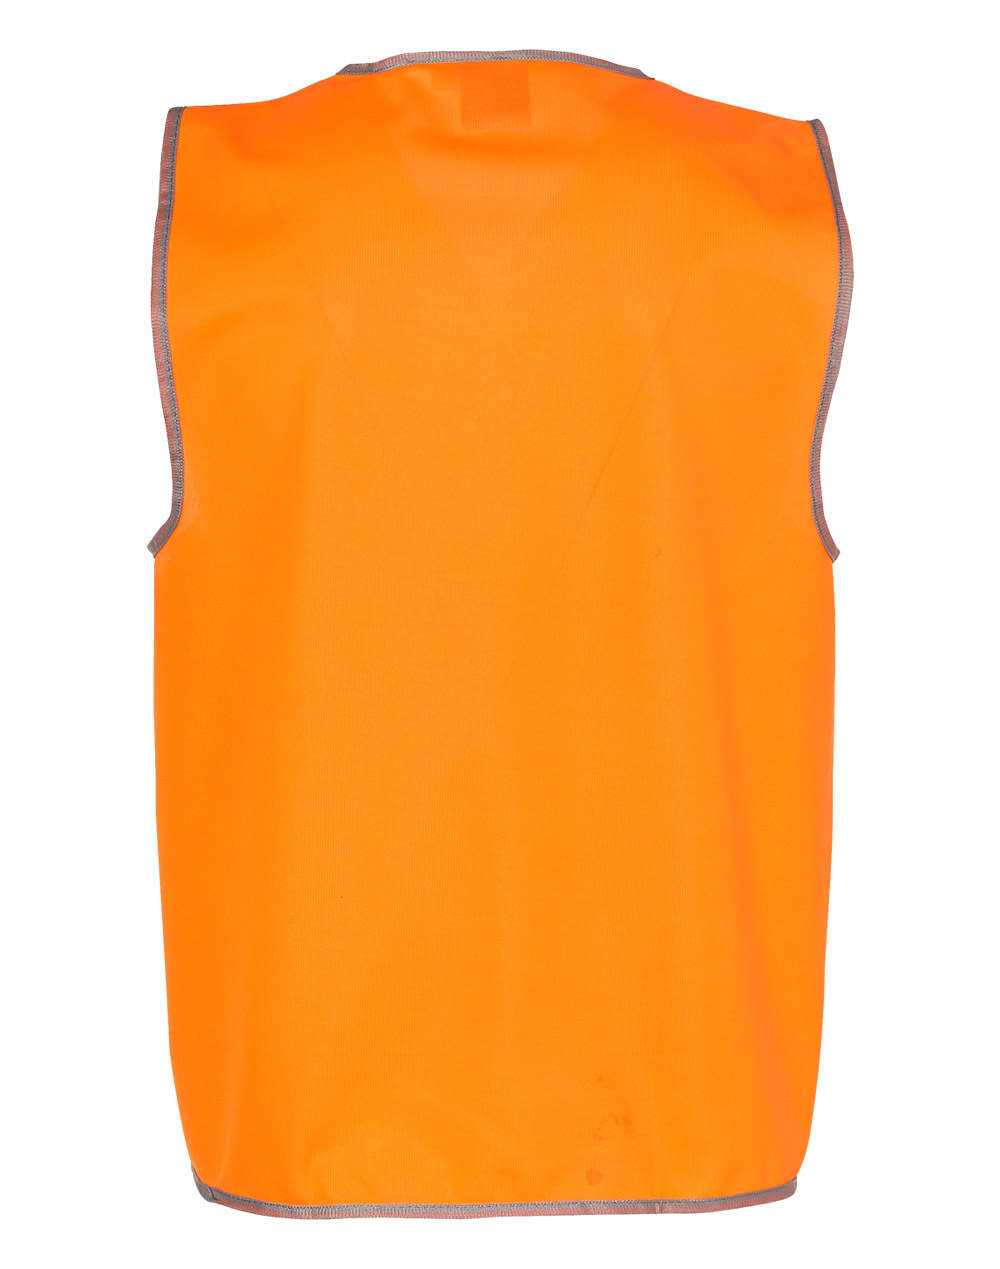 https://s3-ap-southeast-1.amazonaws.com/ws-imgs/WORKWEAR/SW02A_Orange_Back.jpg